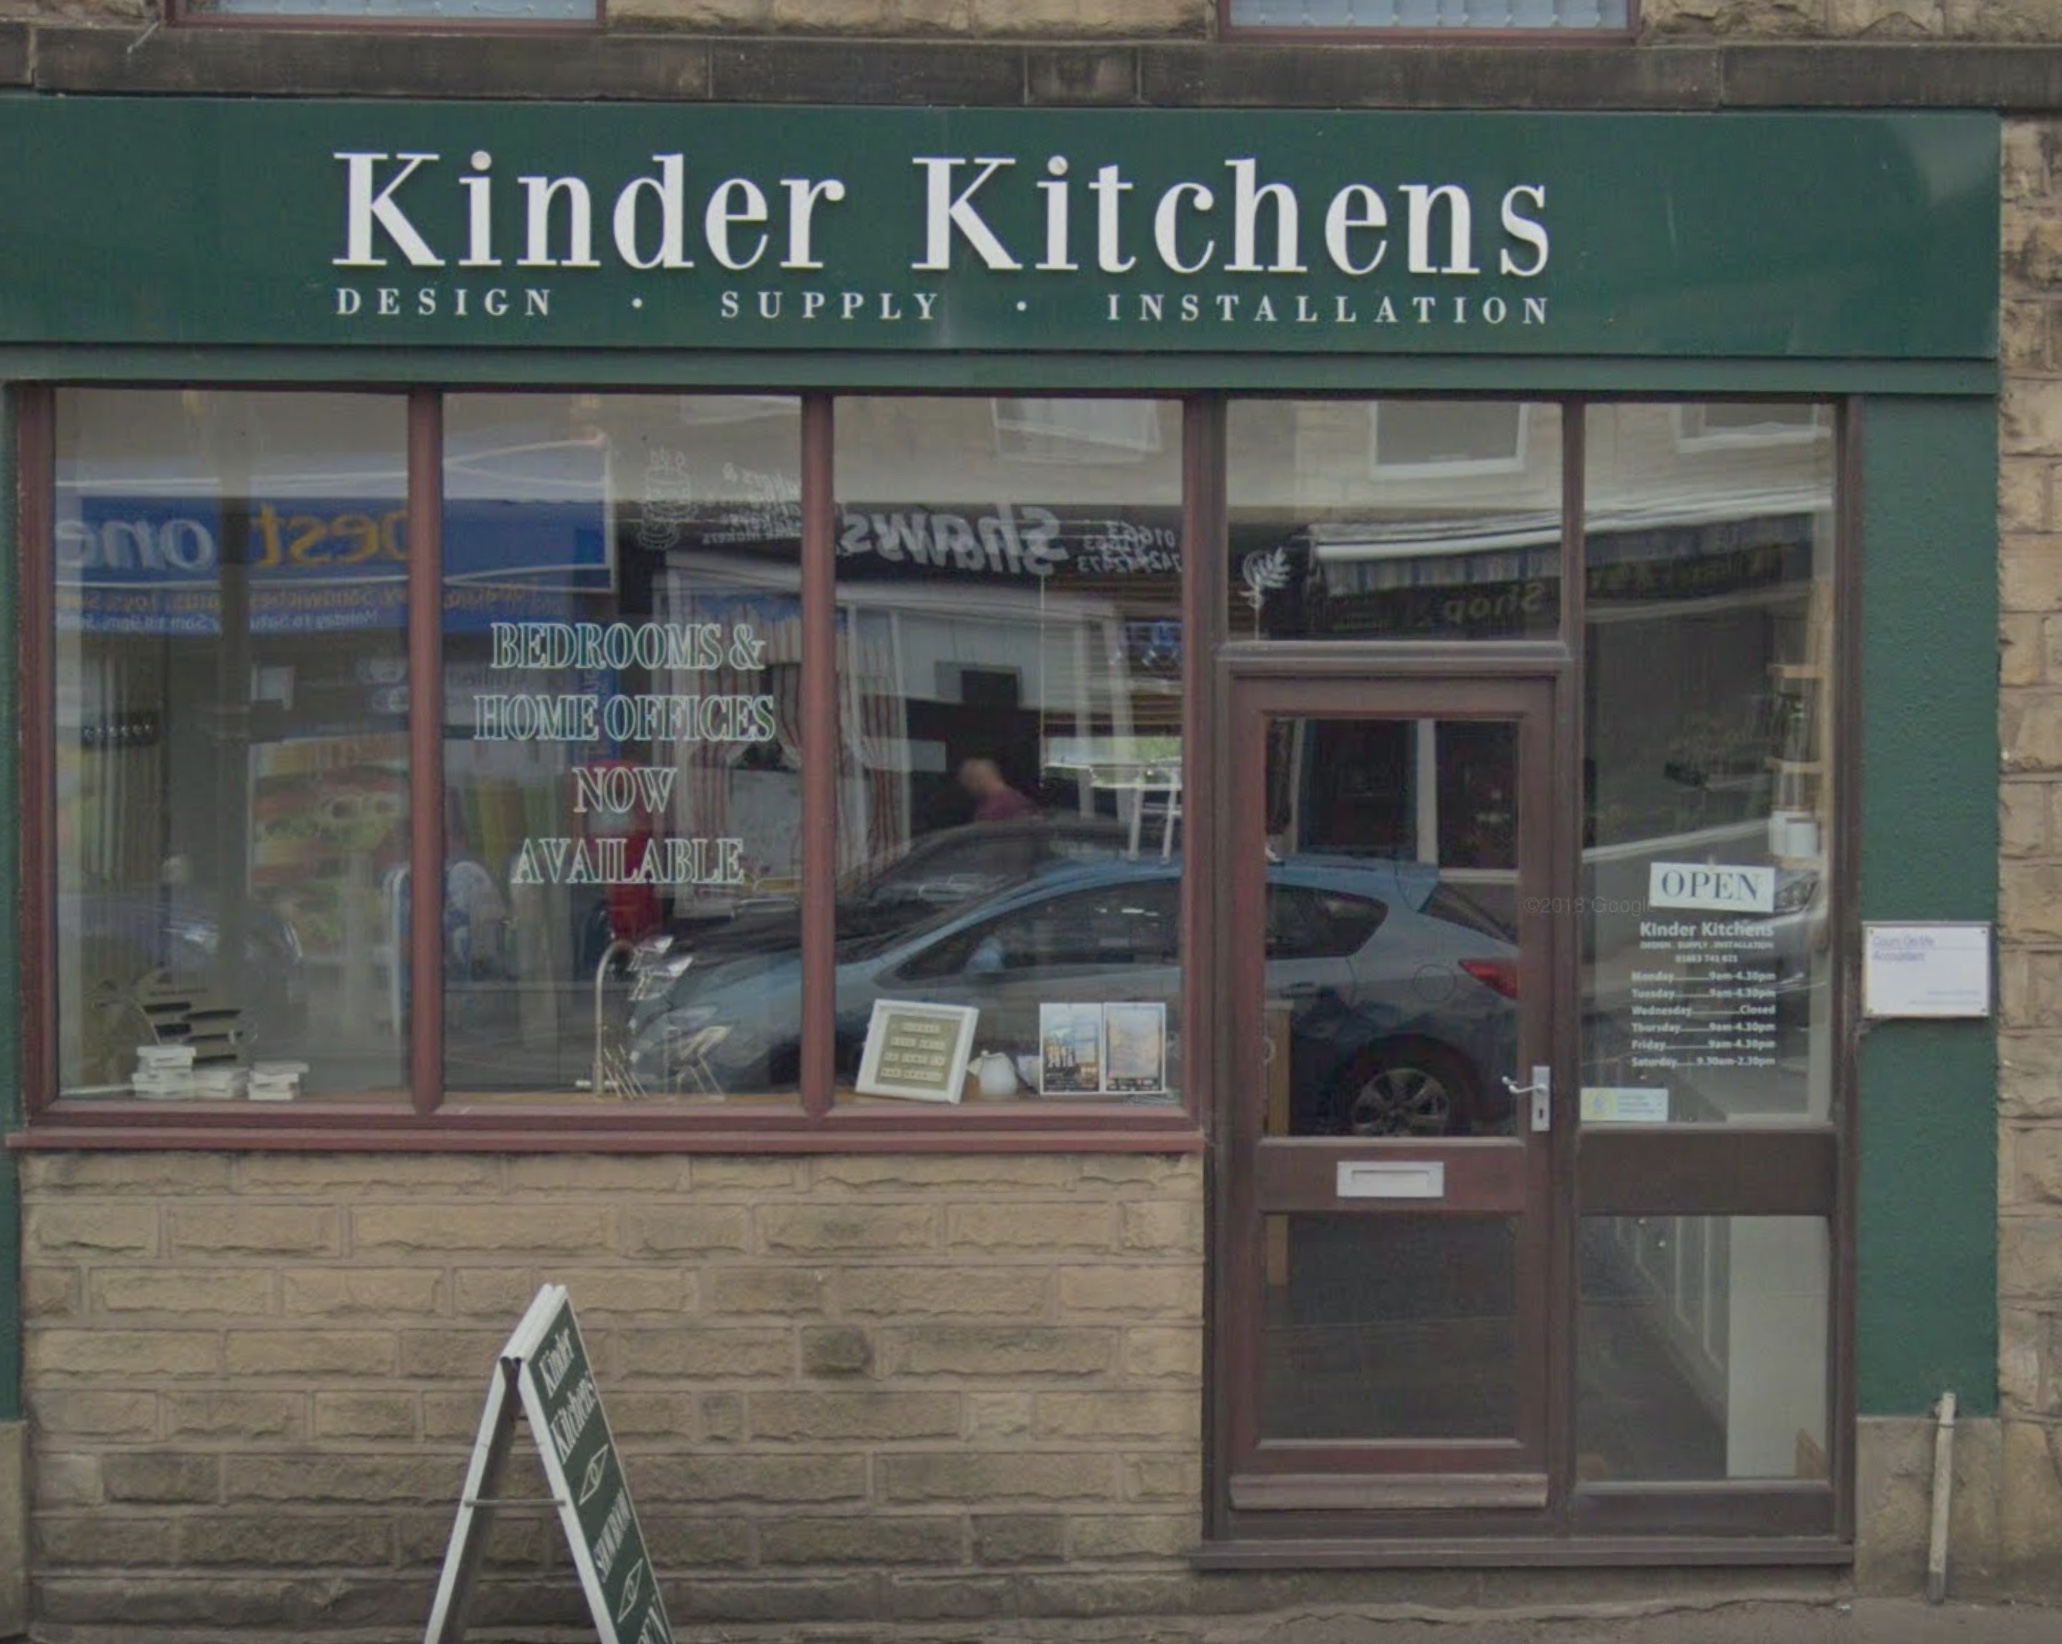 41. Kinder Kitchens